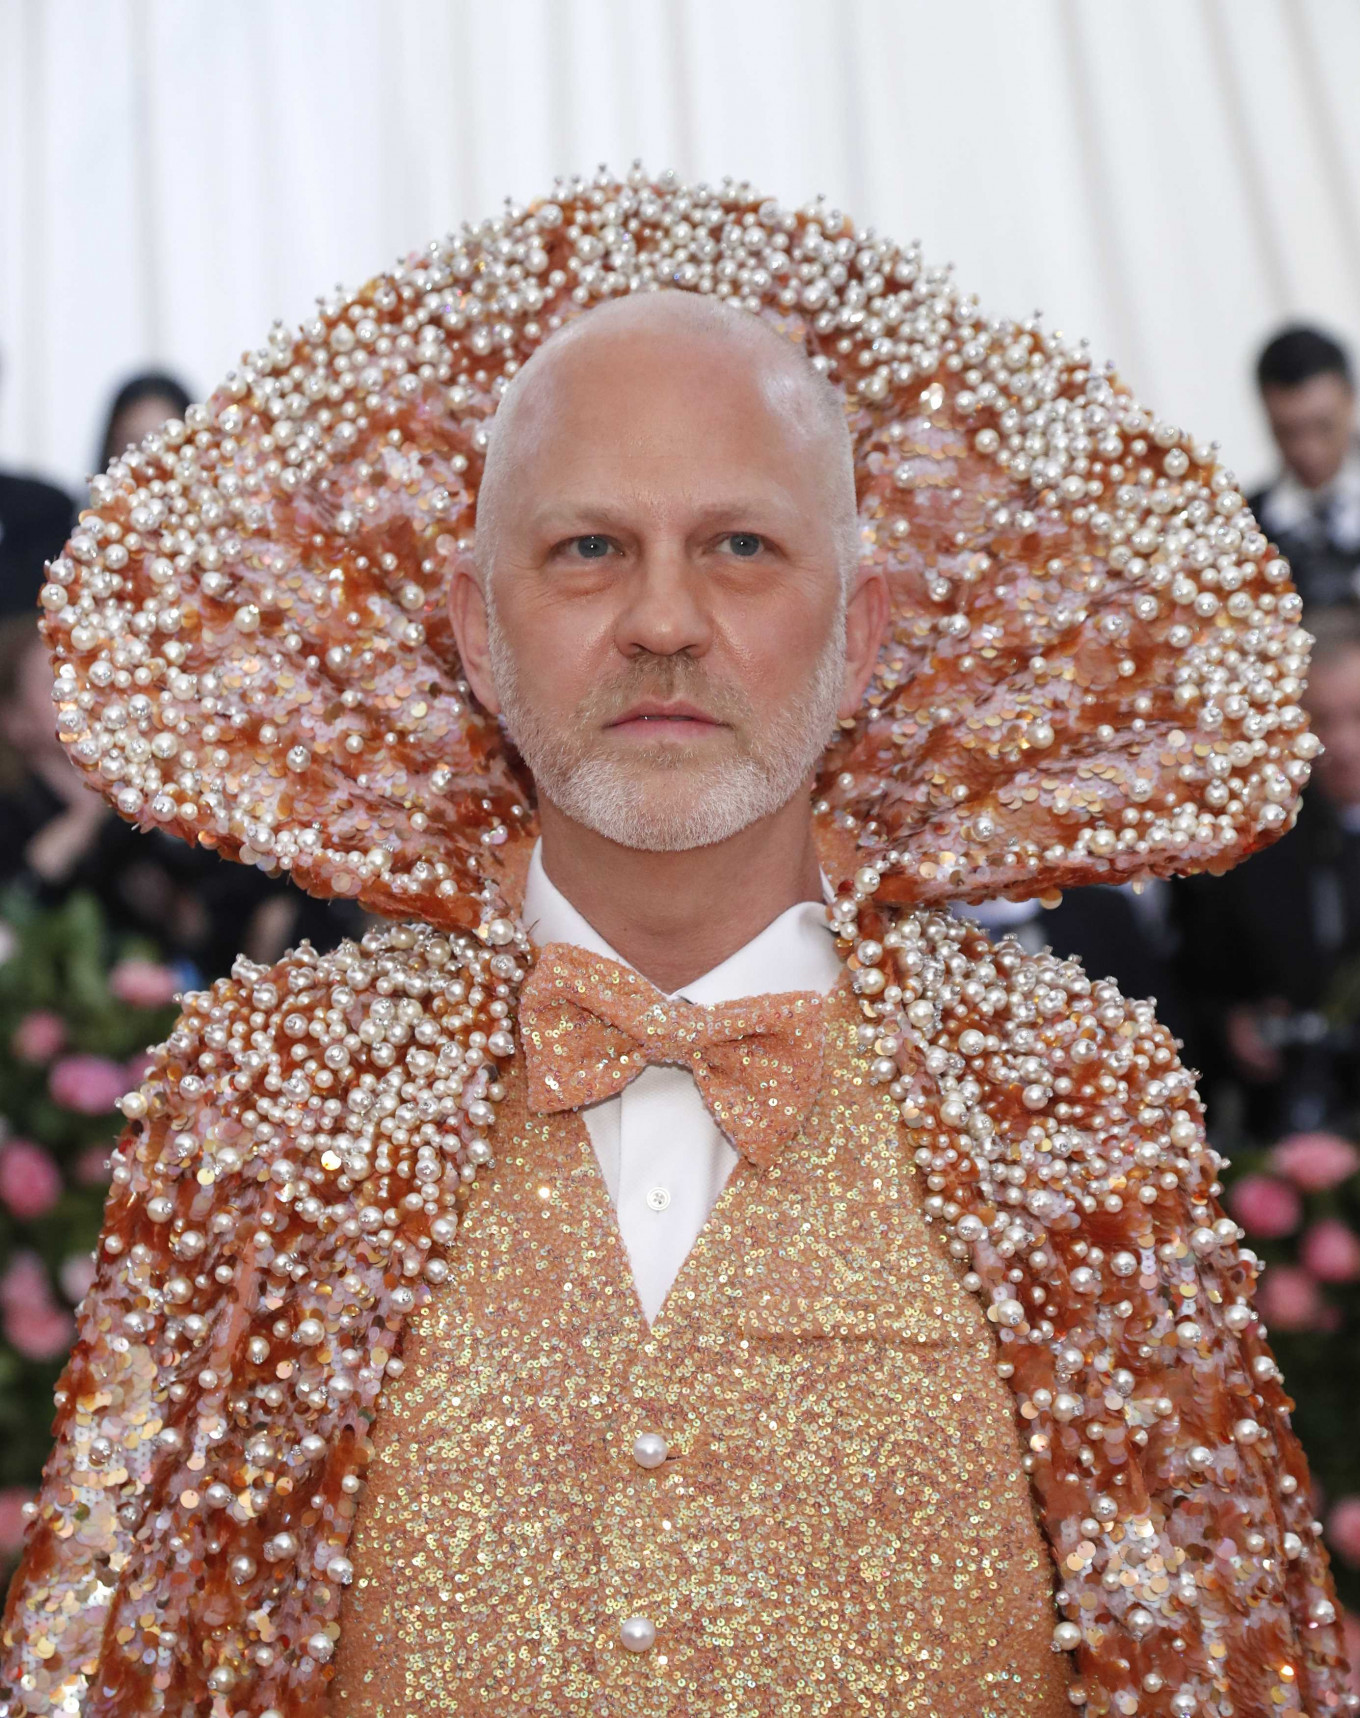 Ryan Murphy at the Metropolitan Museum of Art Costume Institute Gala in New York City, US, on May 6, 2019.